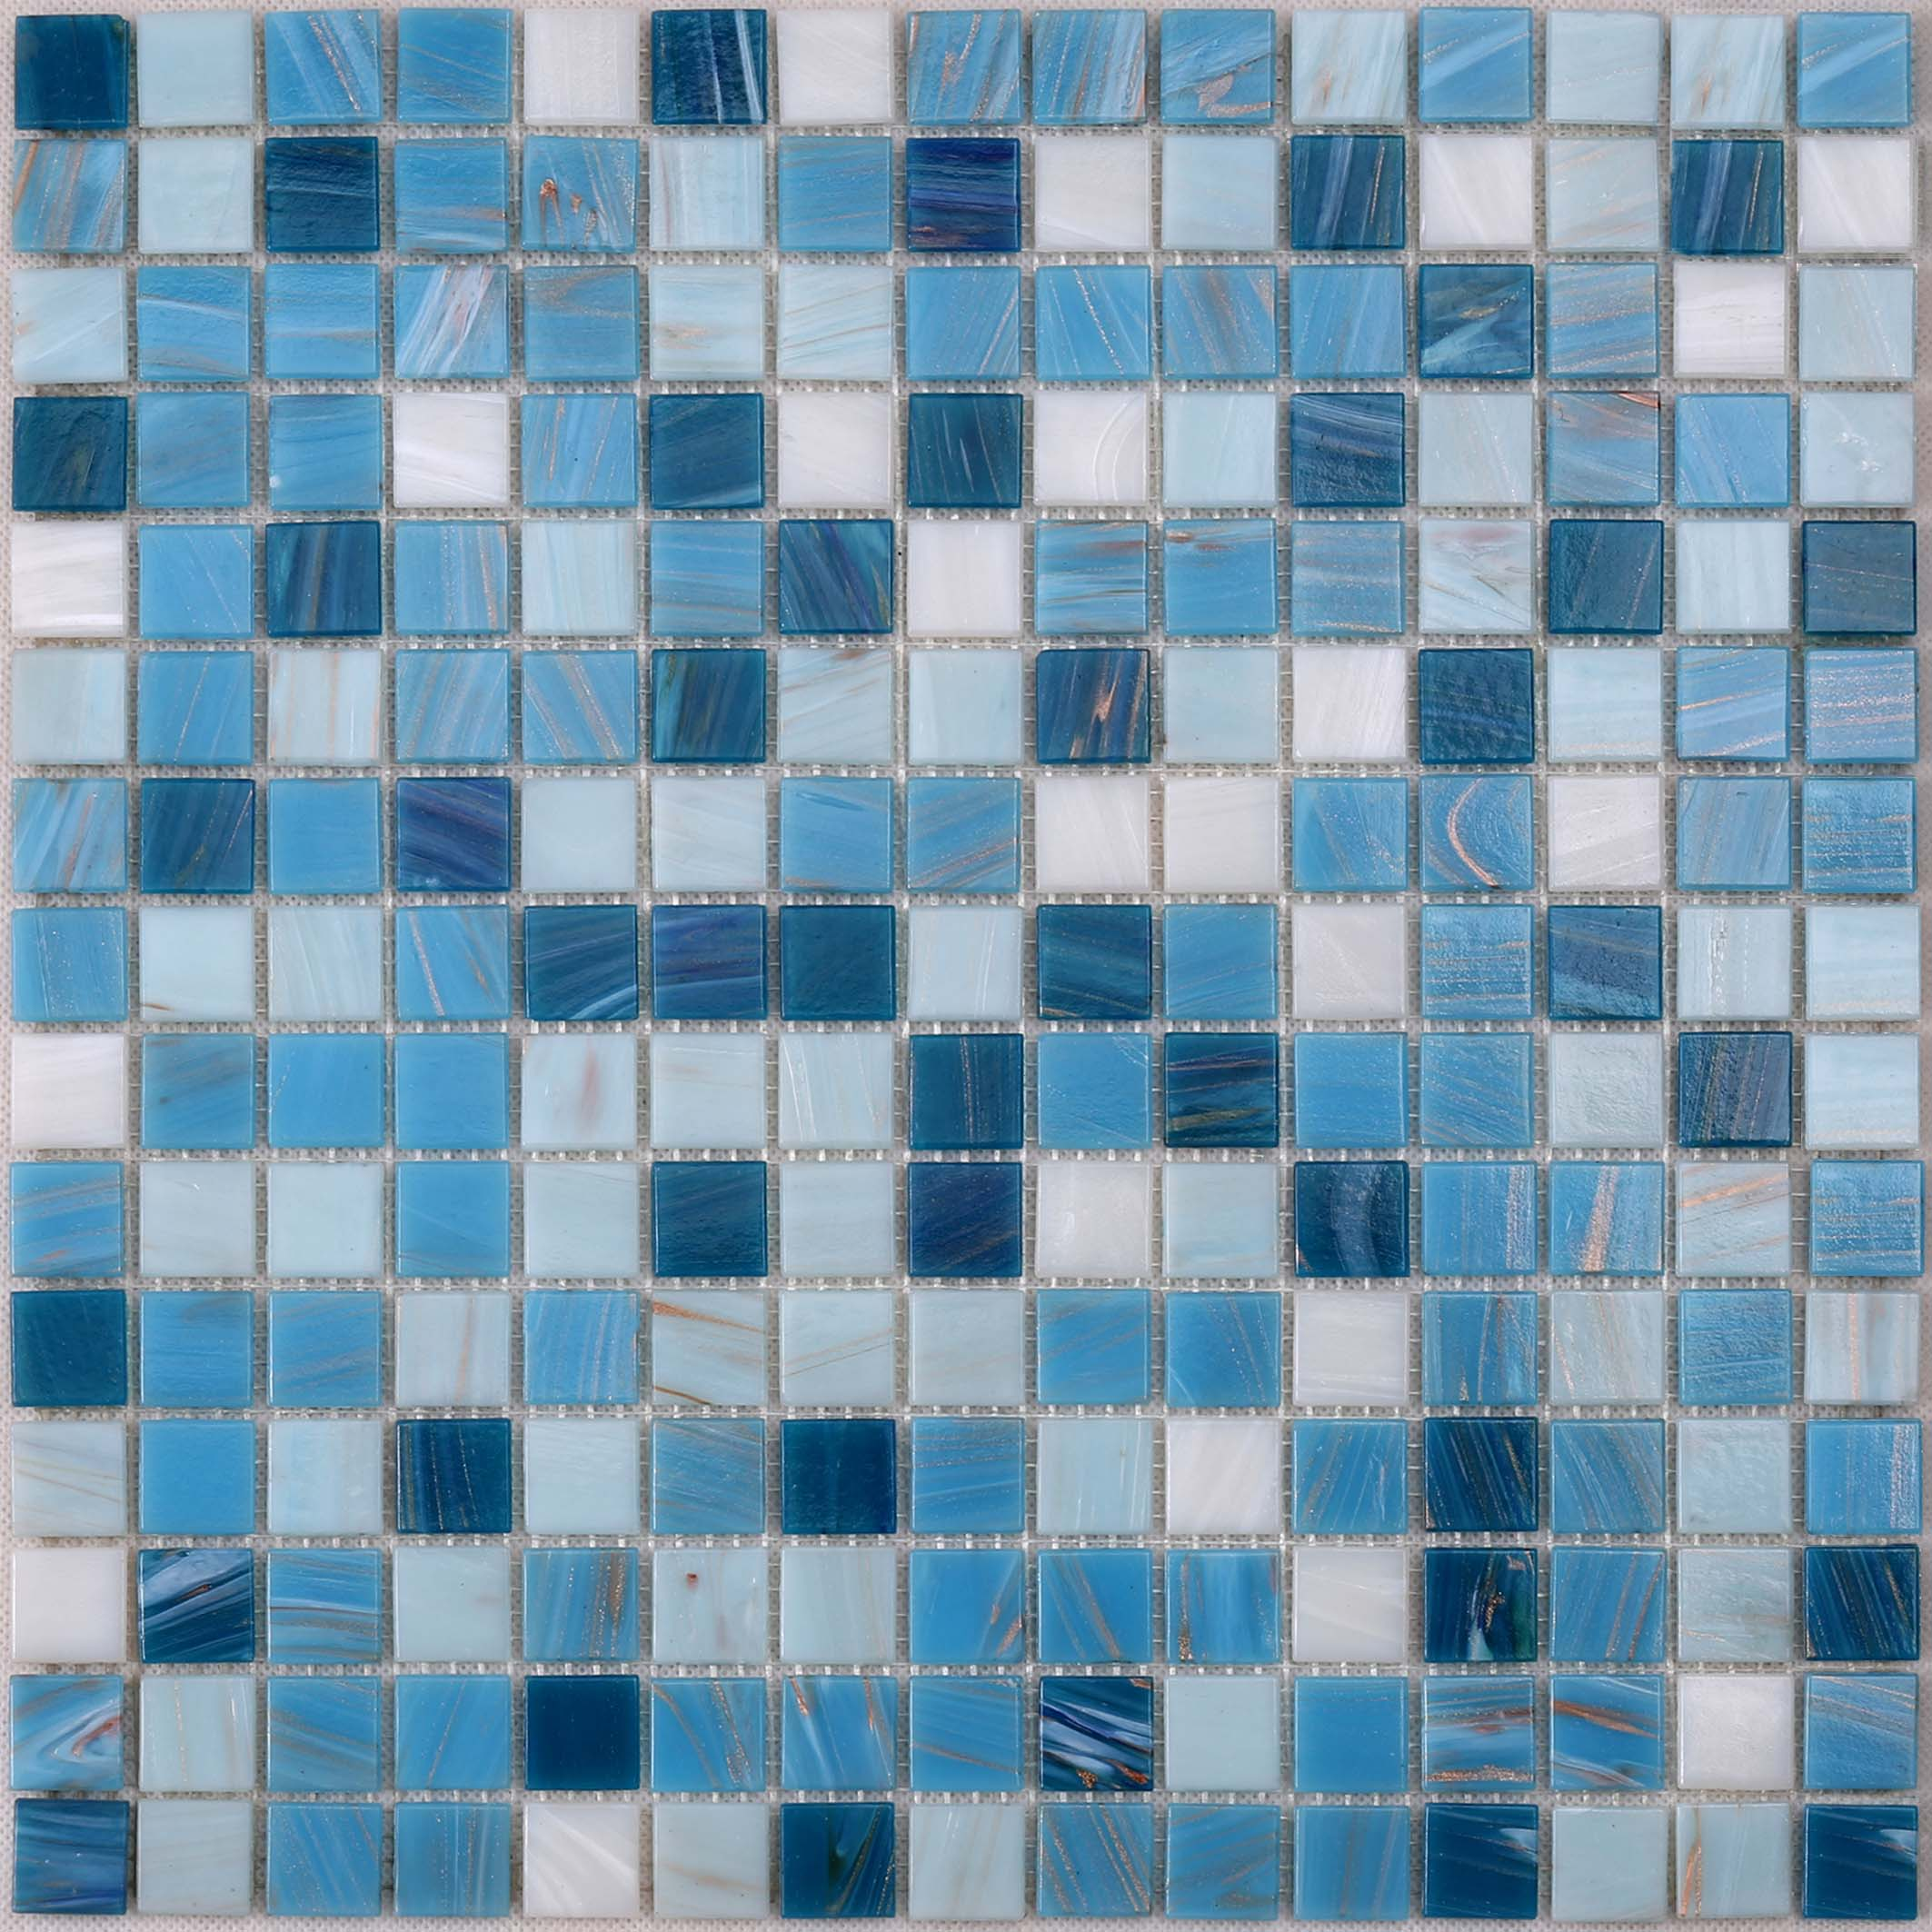 Heng Xing-Swimming Pool Tiles Supplier, Swimming Pool Tile Suppliers | Heng Xing-1